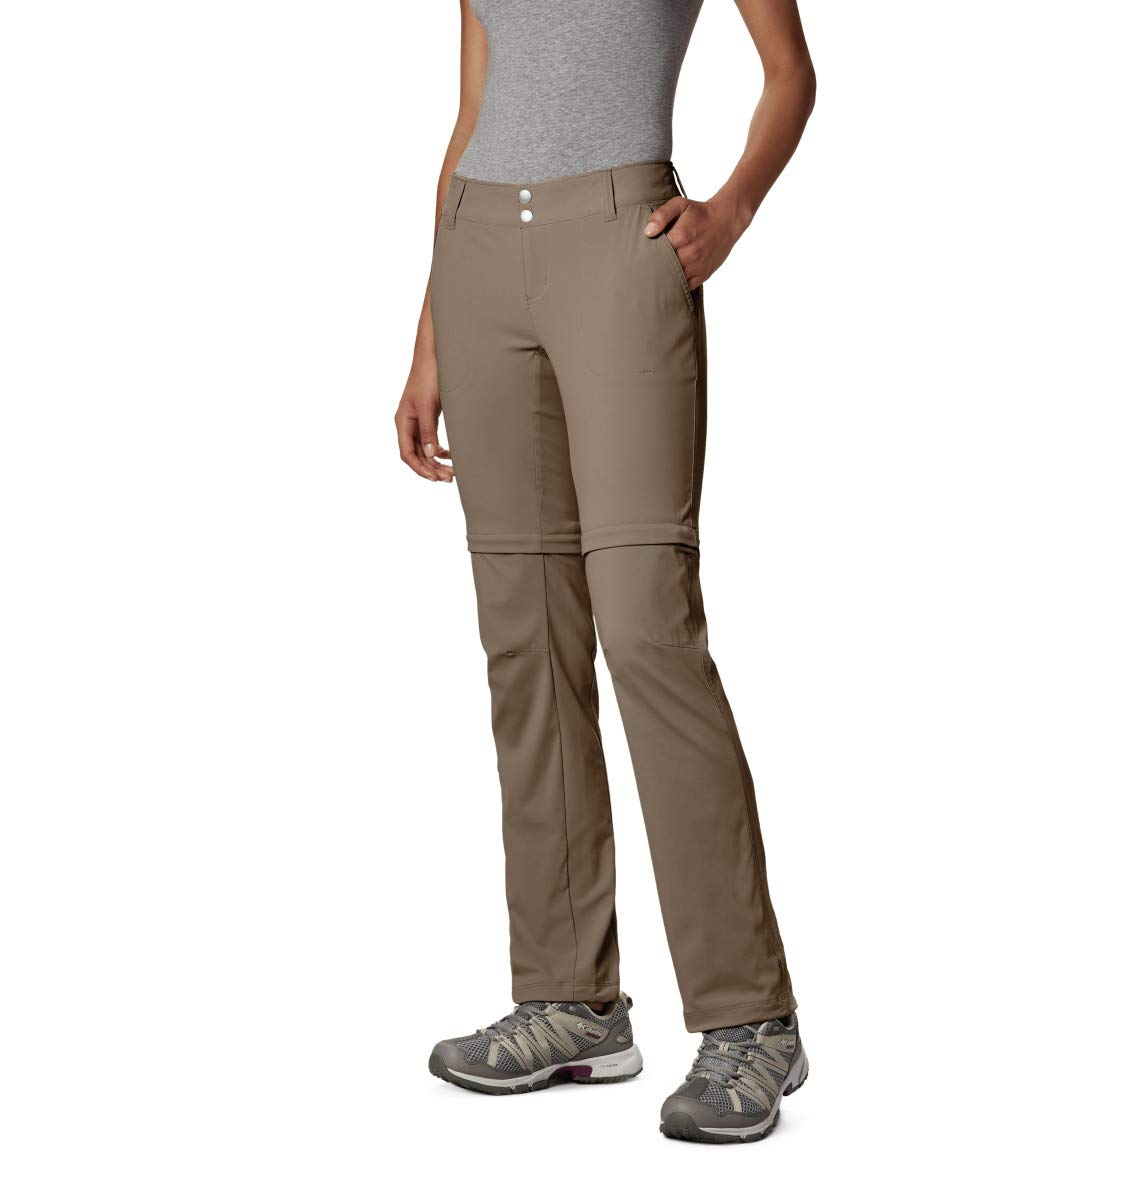 Columbia Women's Saturday Trail II Convertible Pant,Truffle,12 Short by Columbia